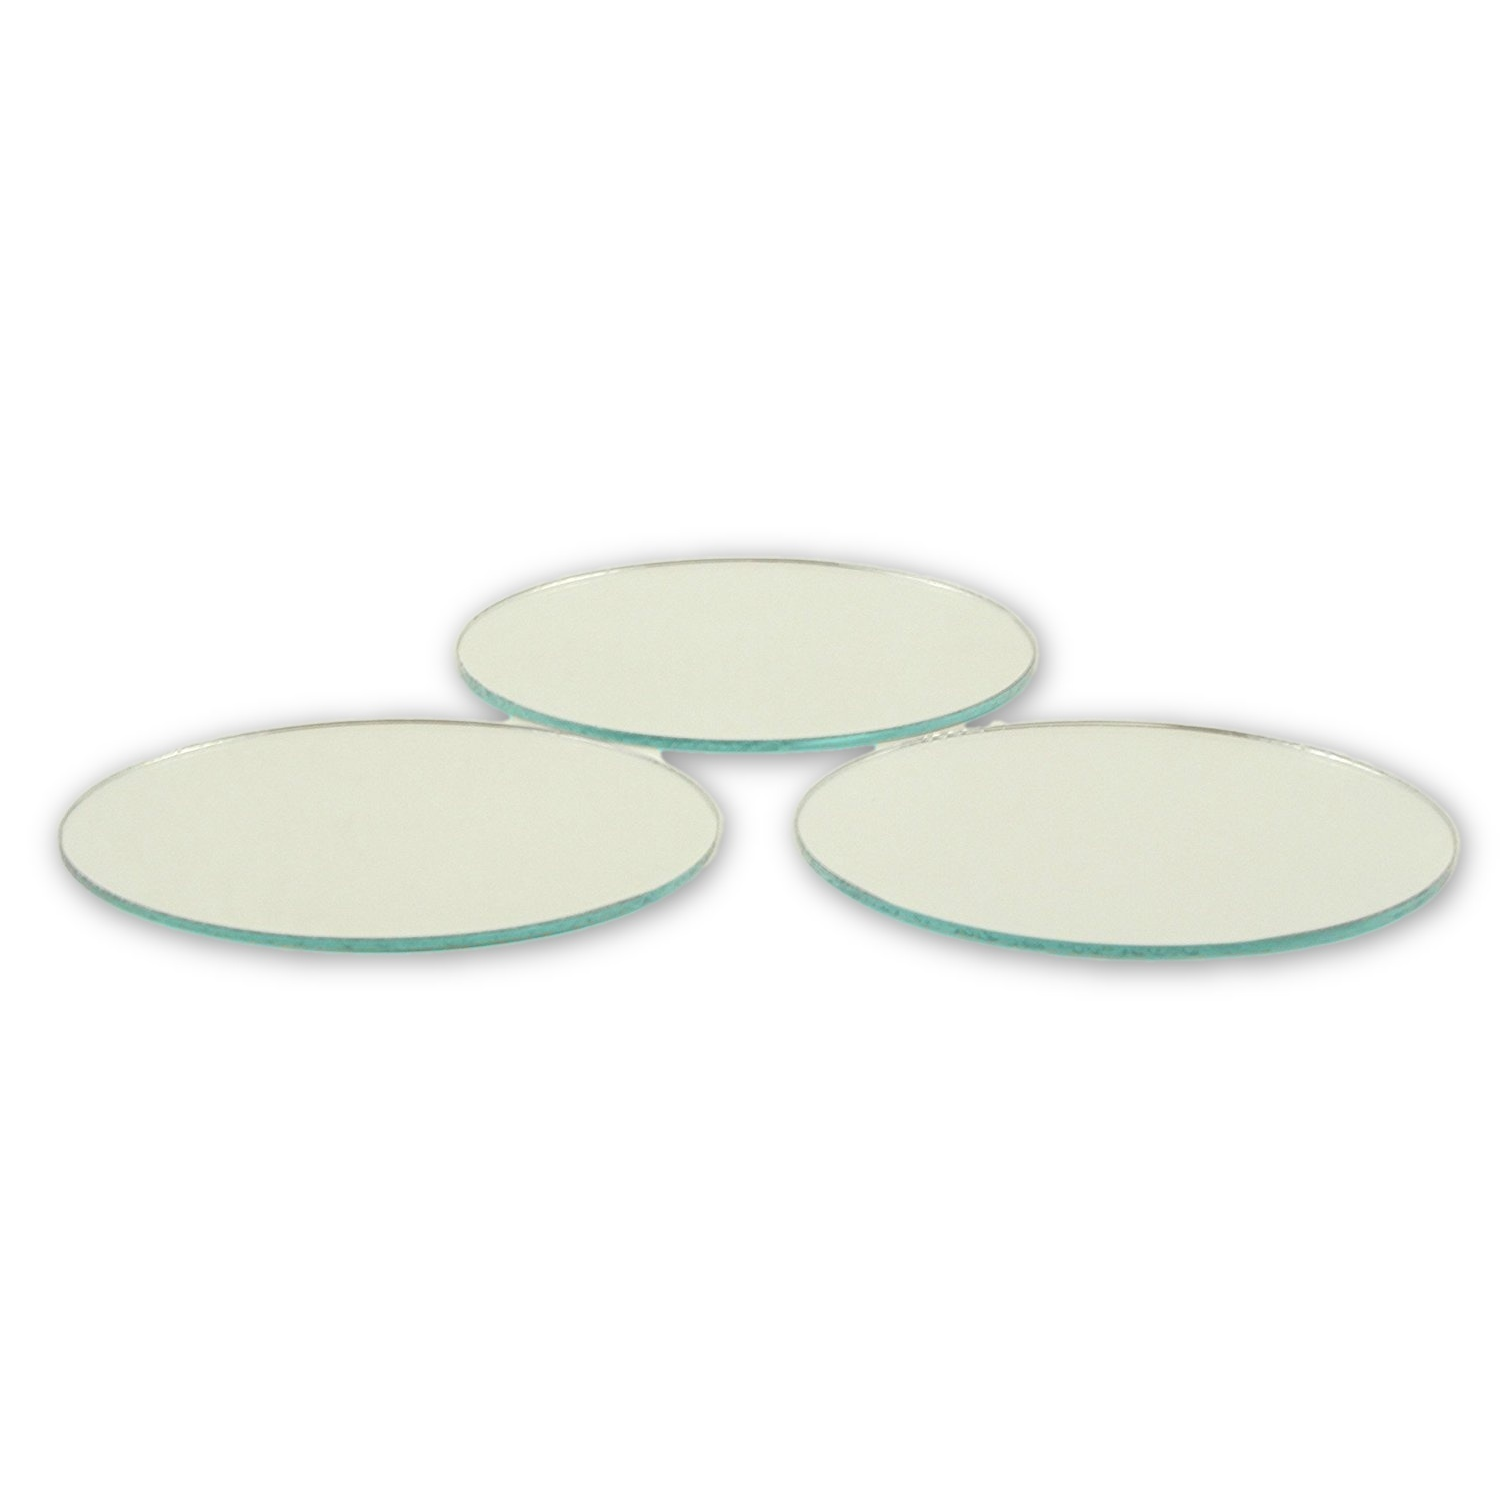 Gl Craft Small Round Mirrors